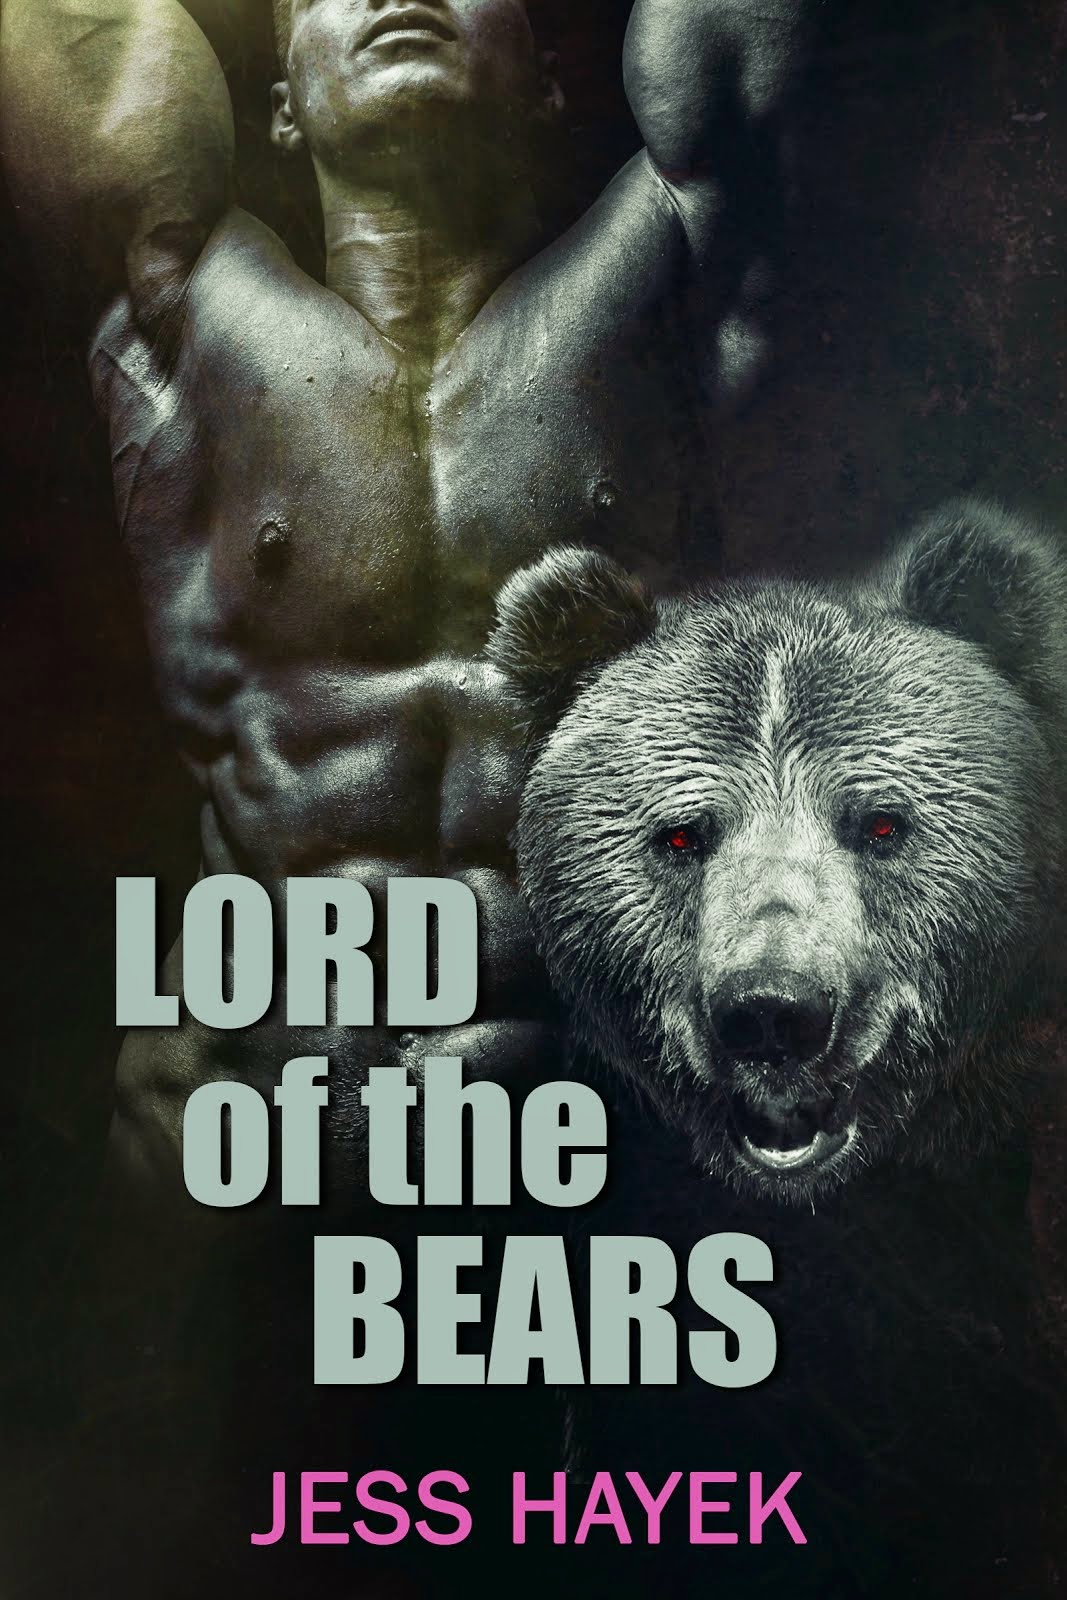 Get started on the Bear-Lord series for just 99 cents!